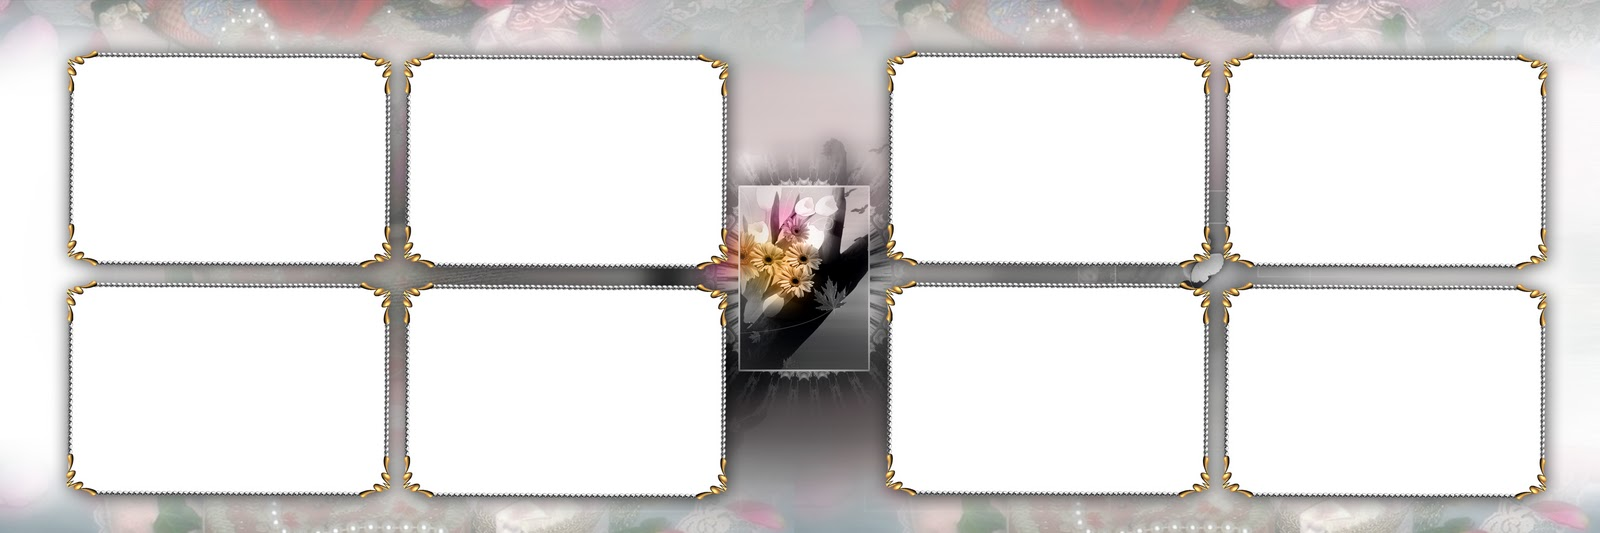 Collection Of Karizma Photo Frame Templates2 | Design House .....Stop ...